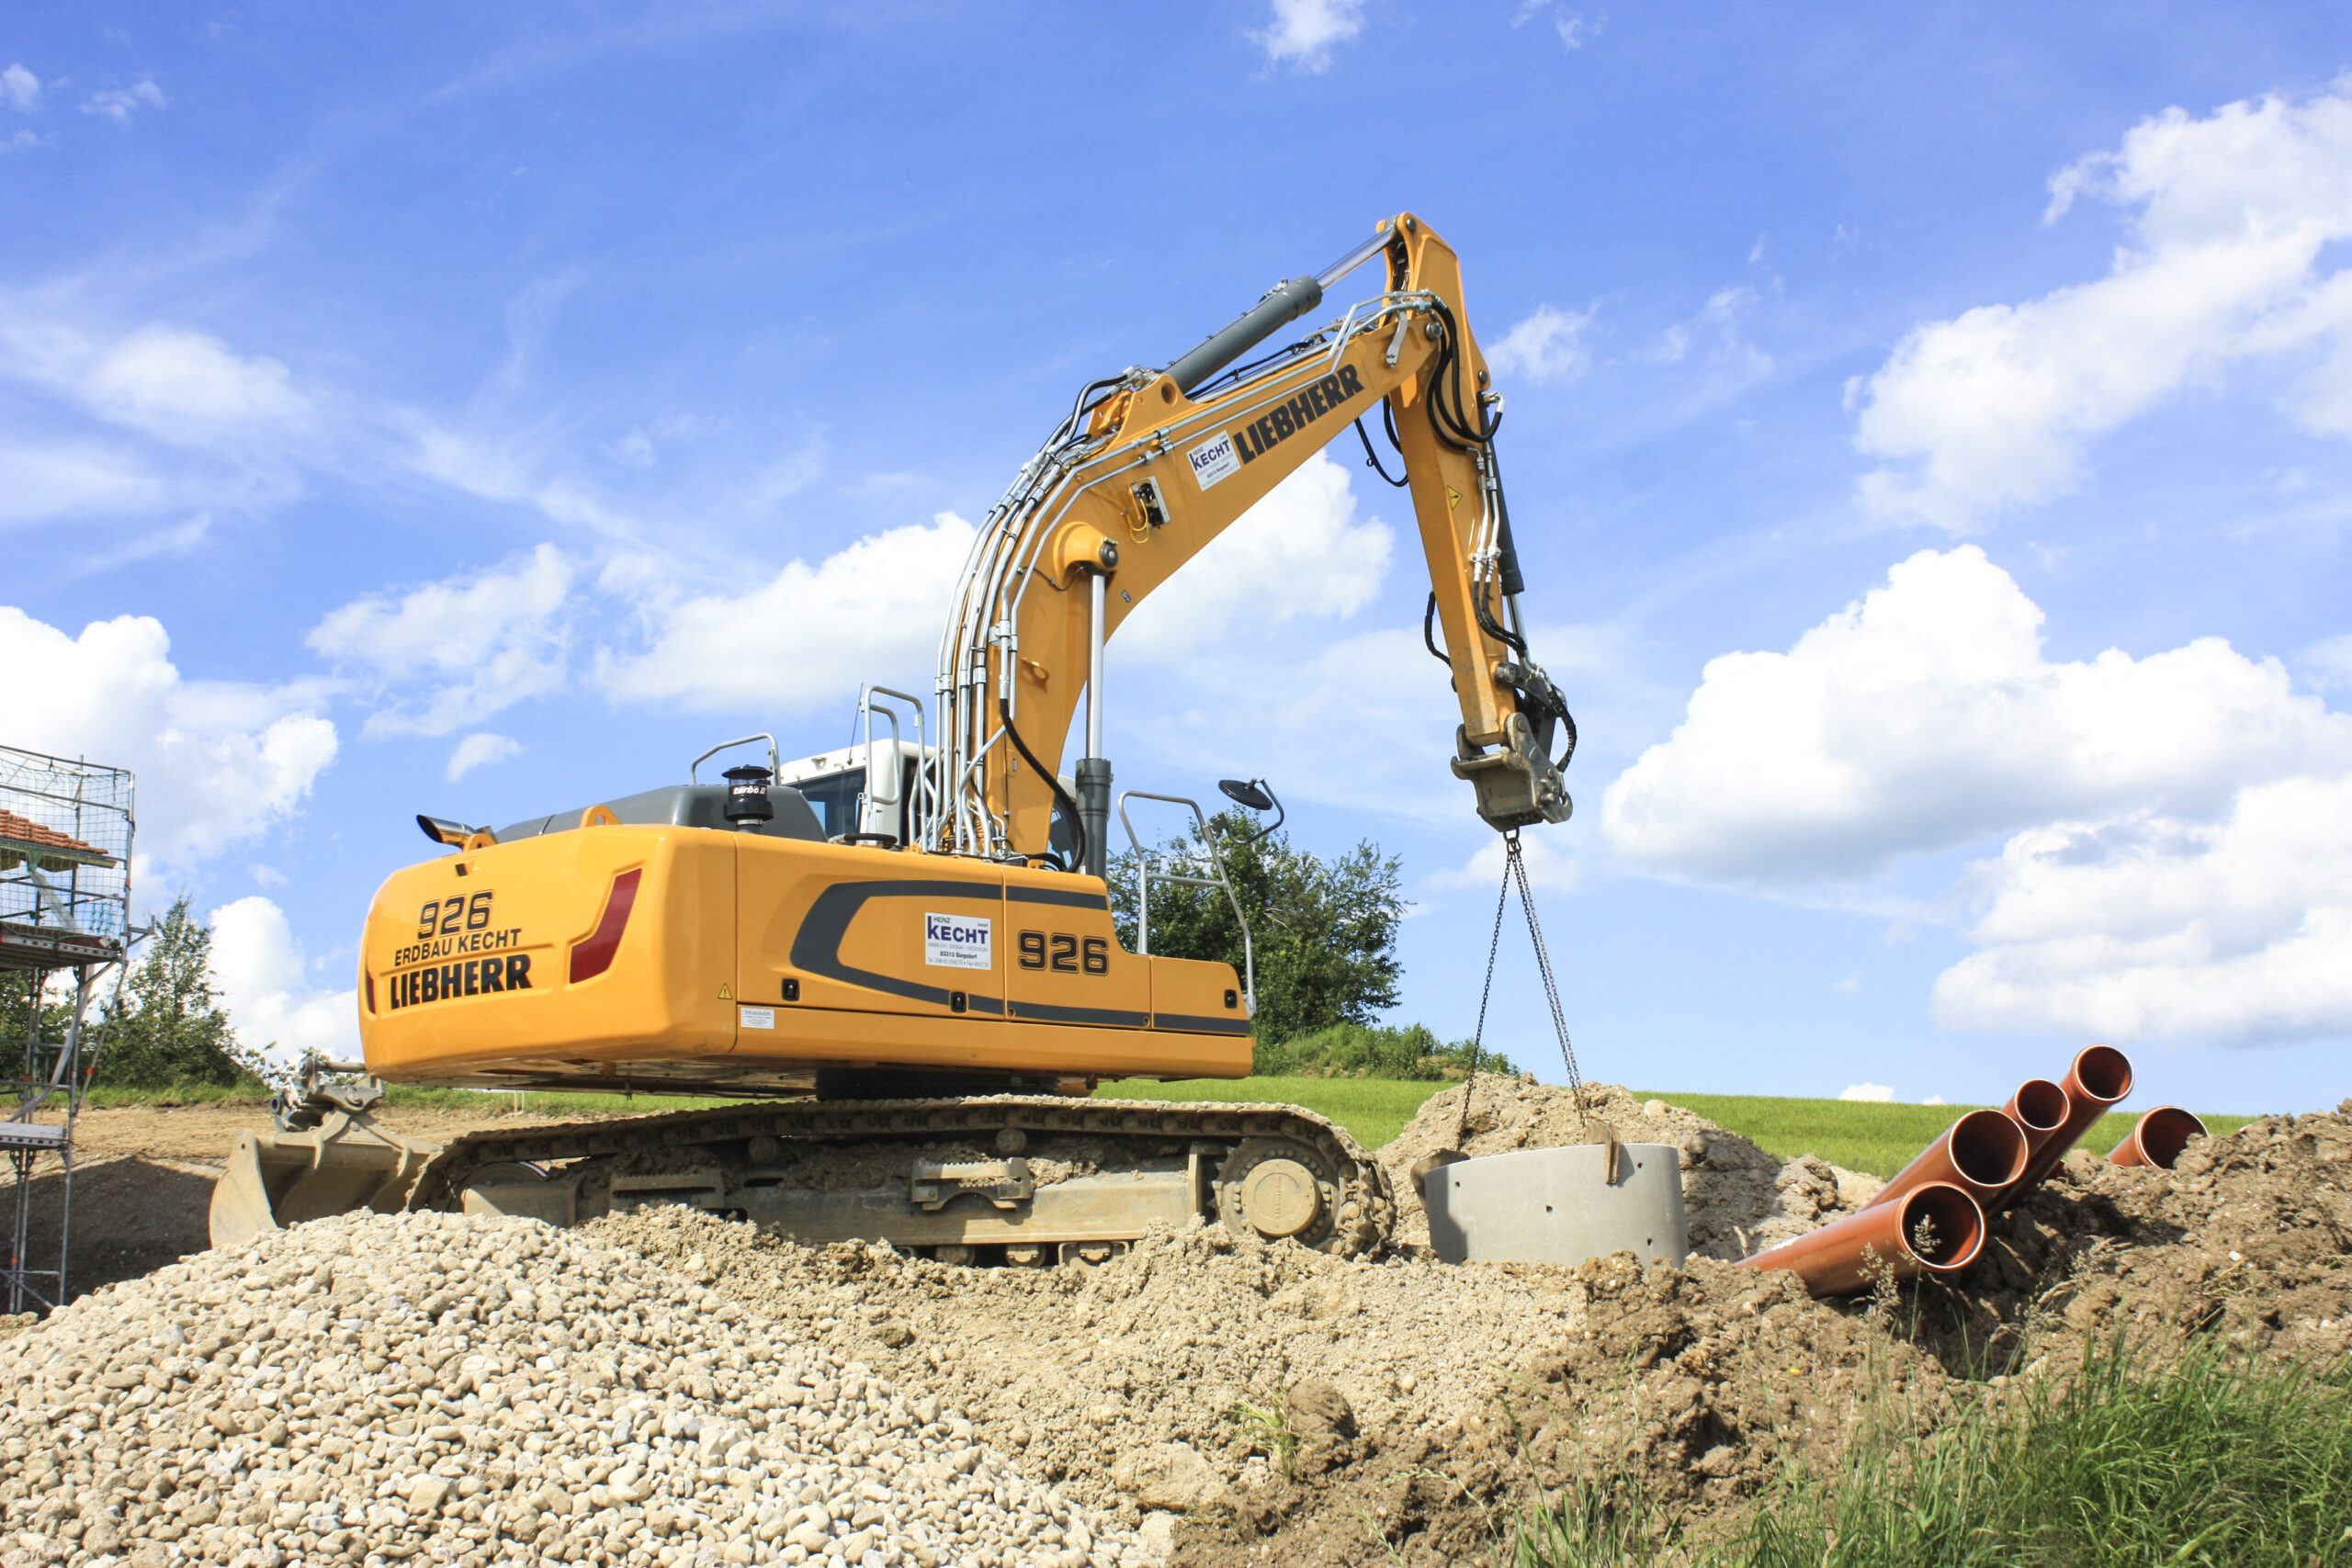 Global première for the new Liebherr R 926 crawler excavator in Bavaria